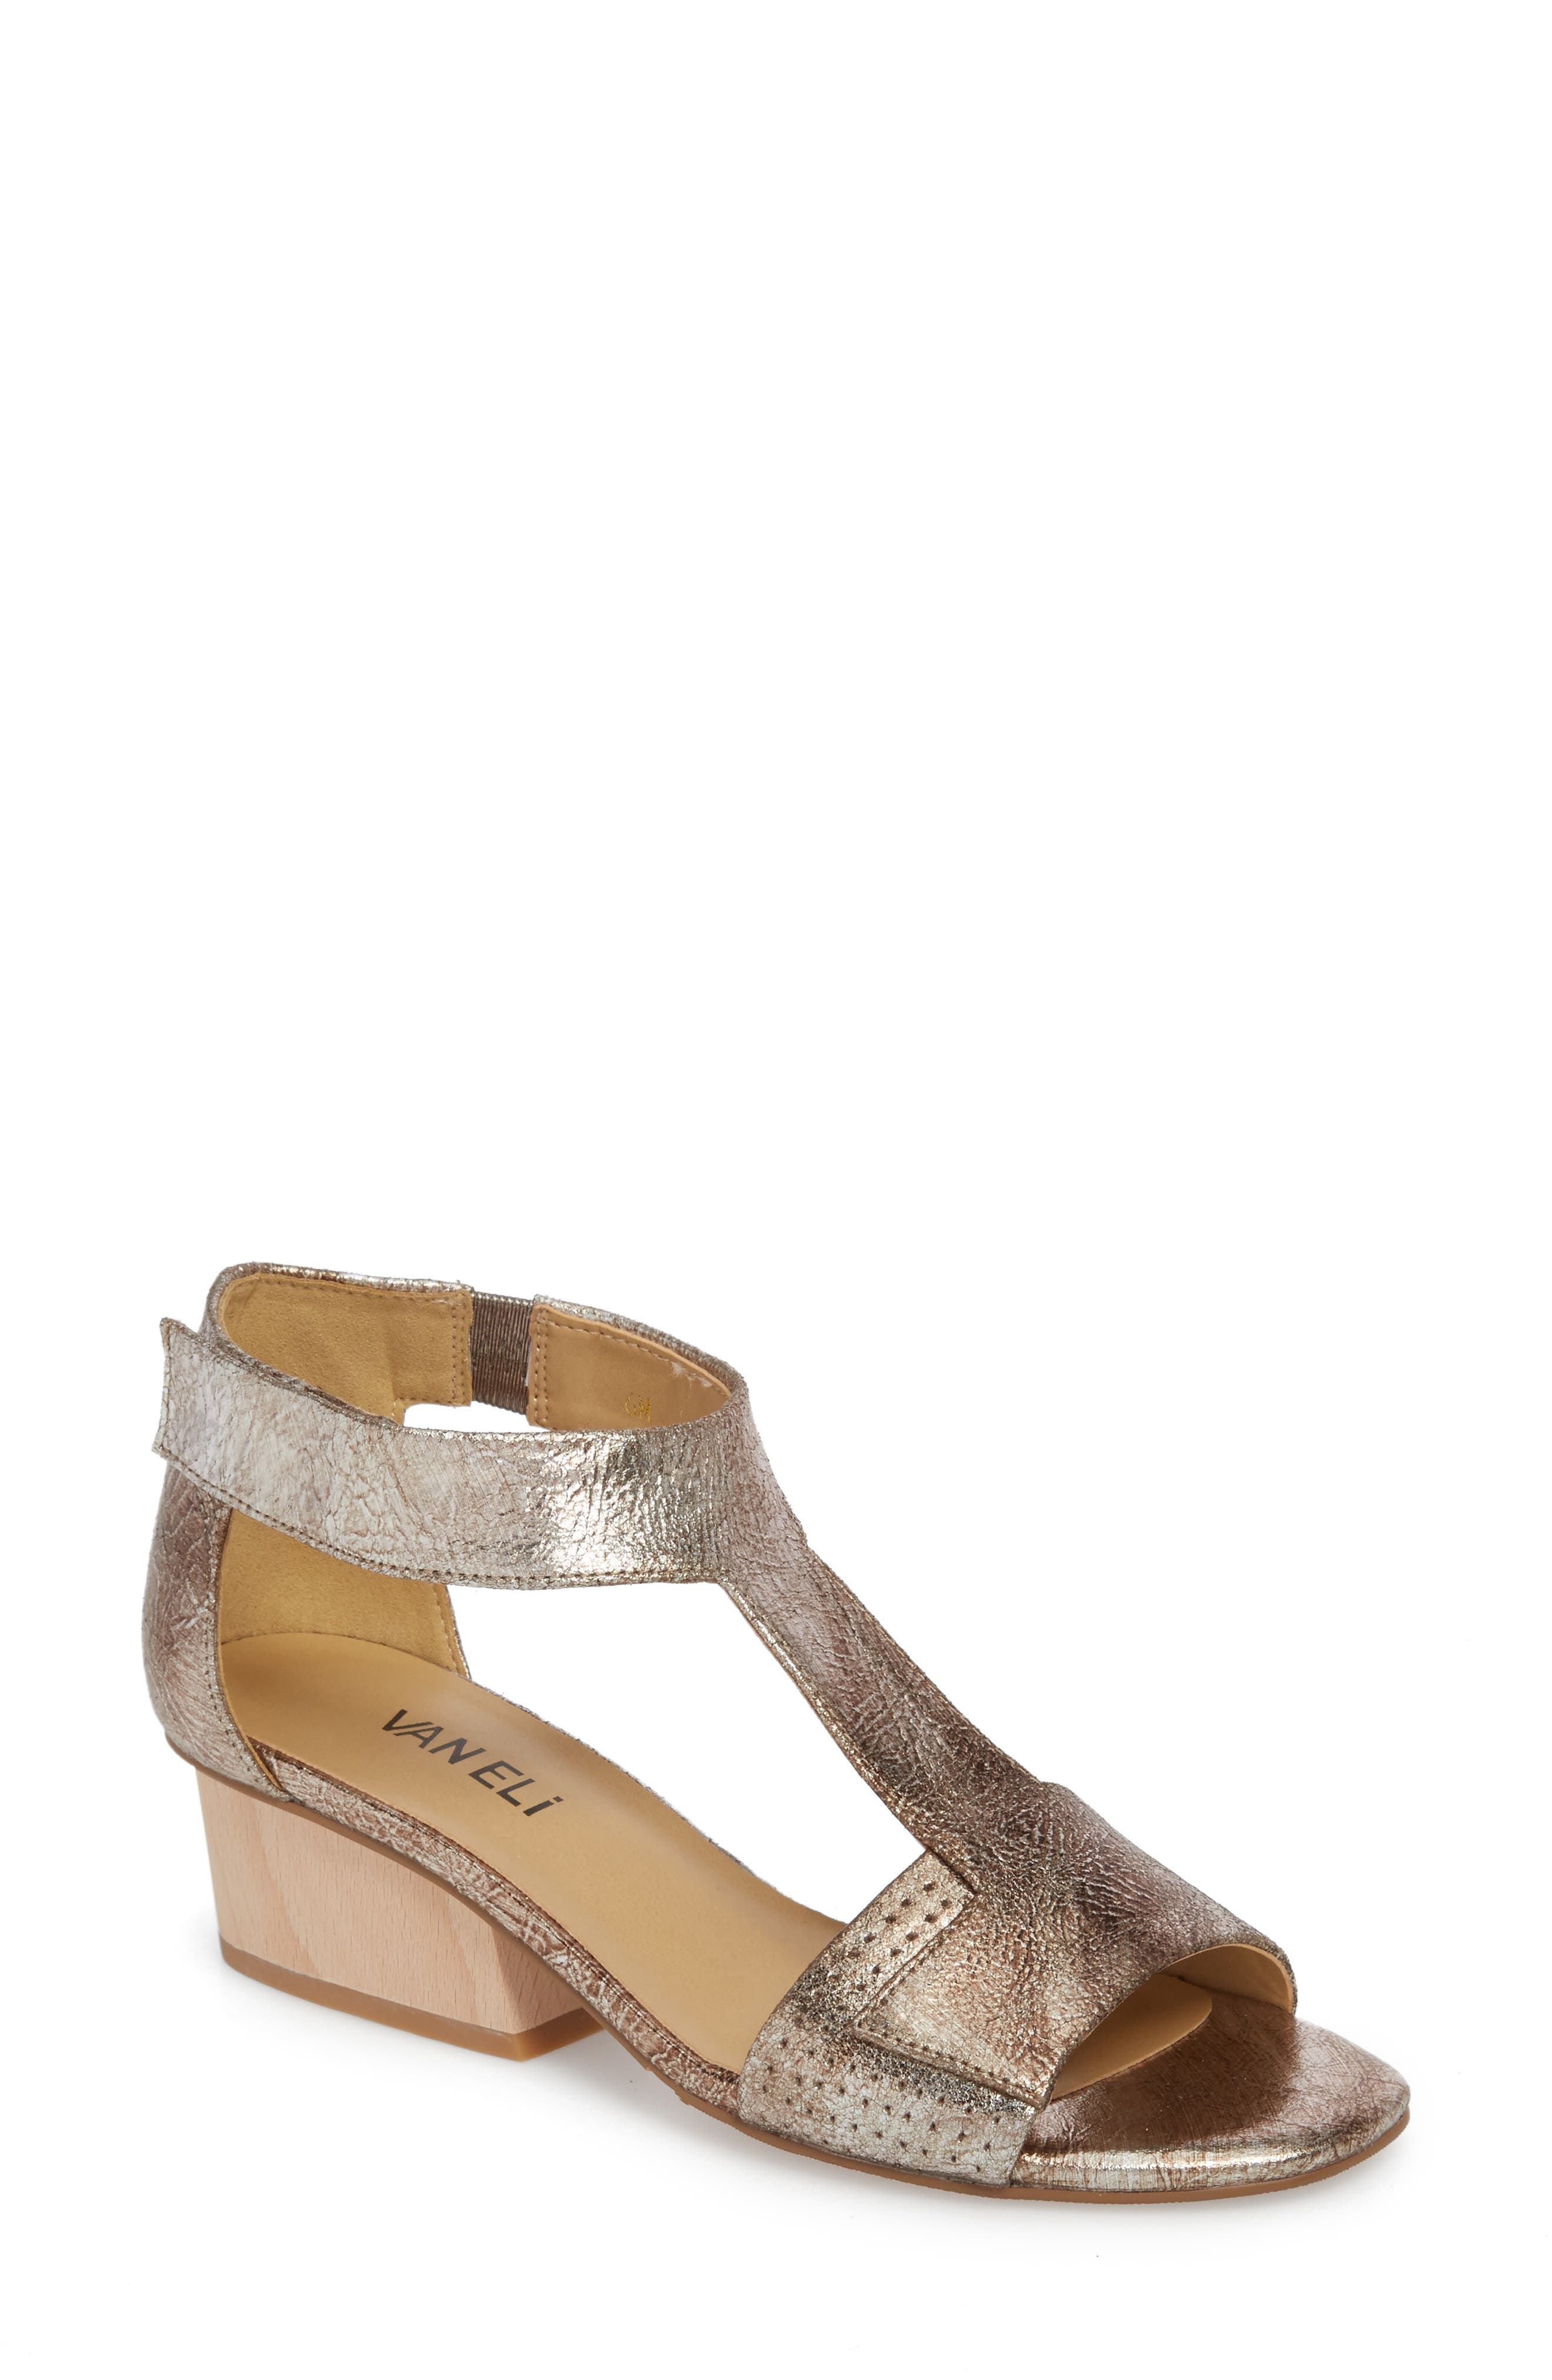 Calyx Block Heel Sandal,                             Main thumbnail 1, color,                             Grey Leather